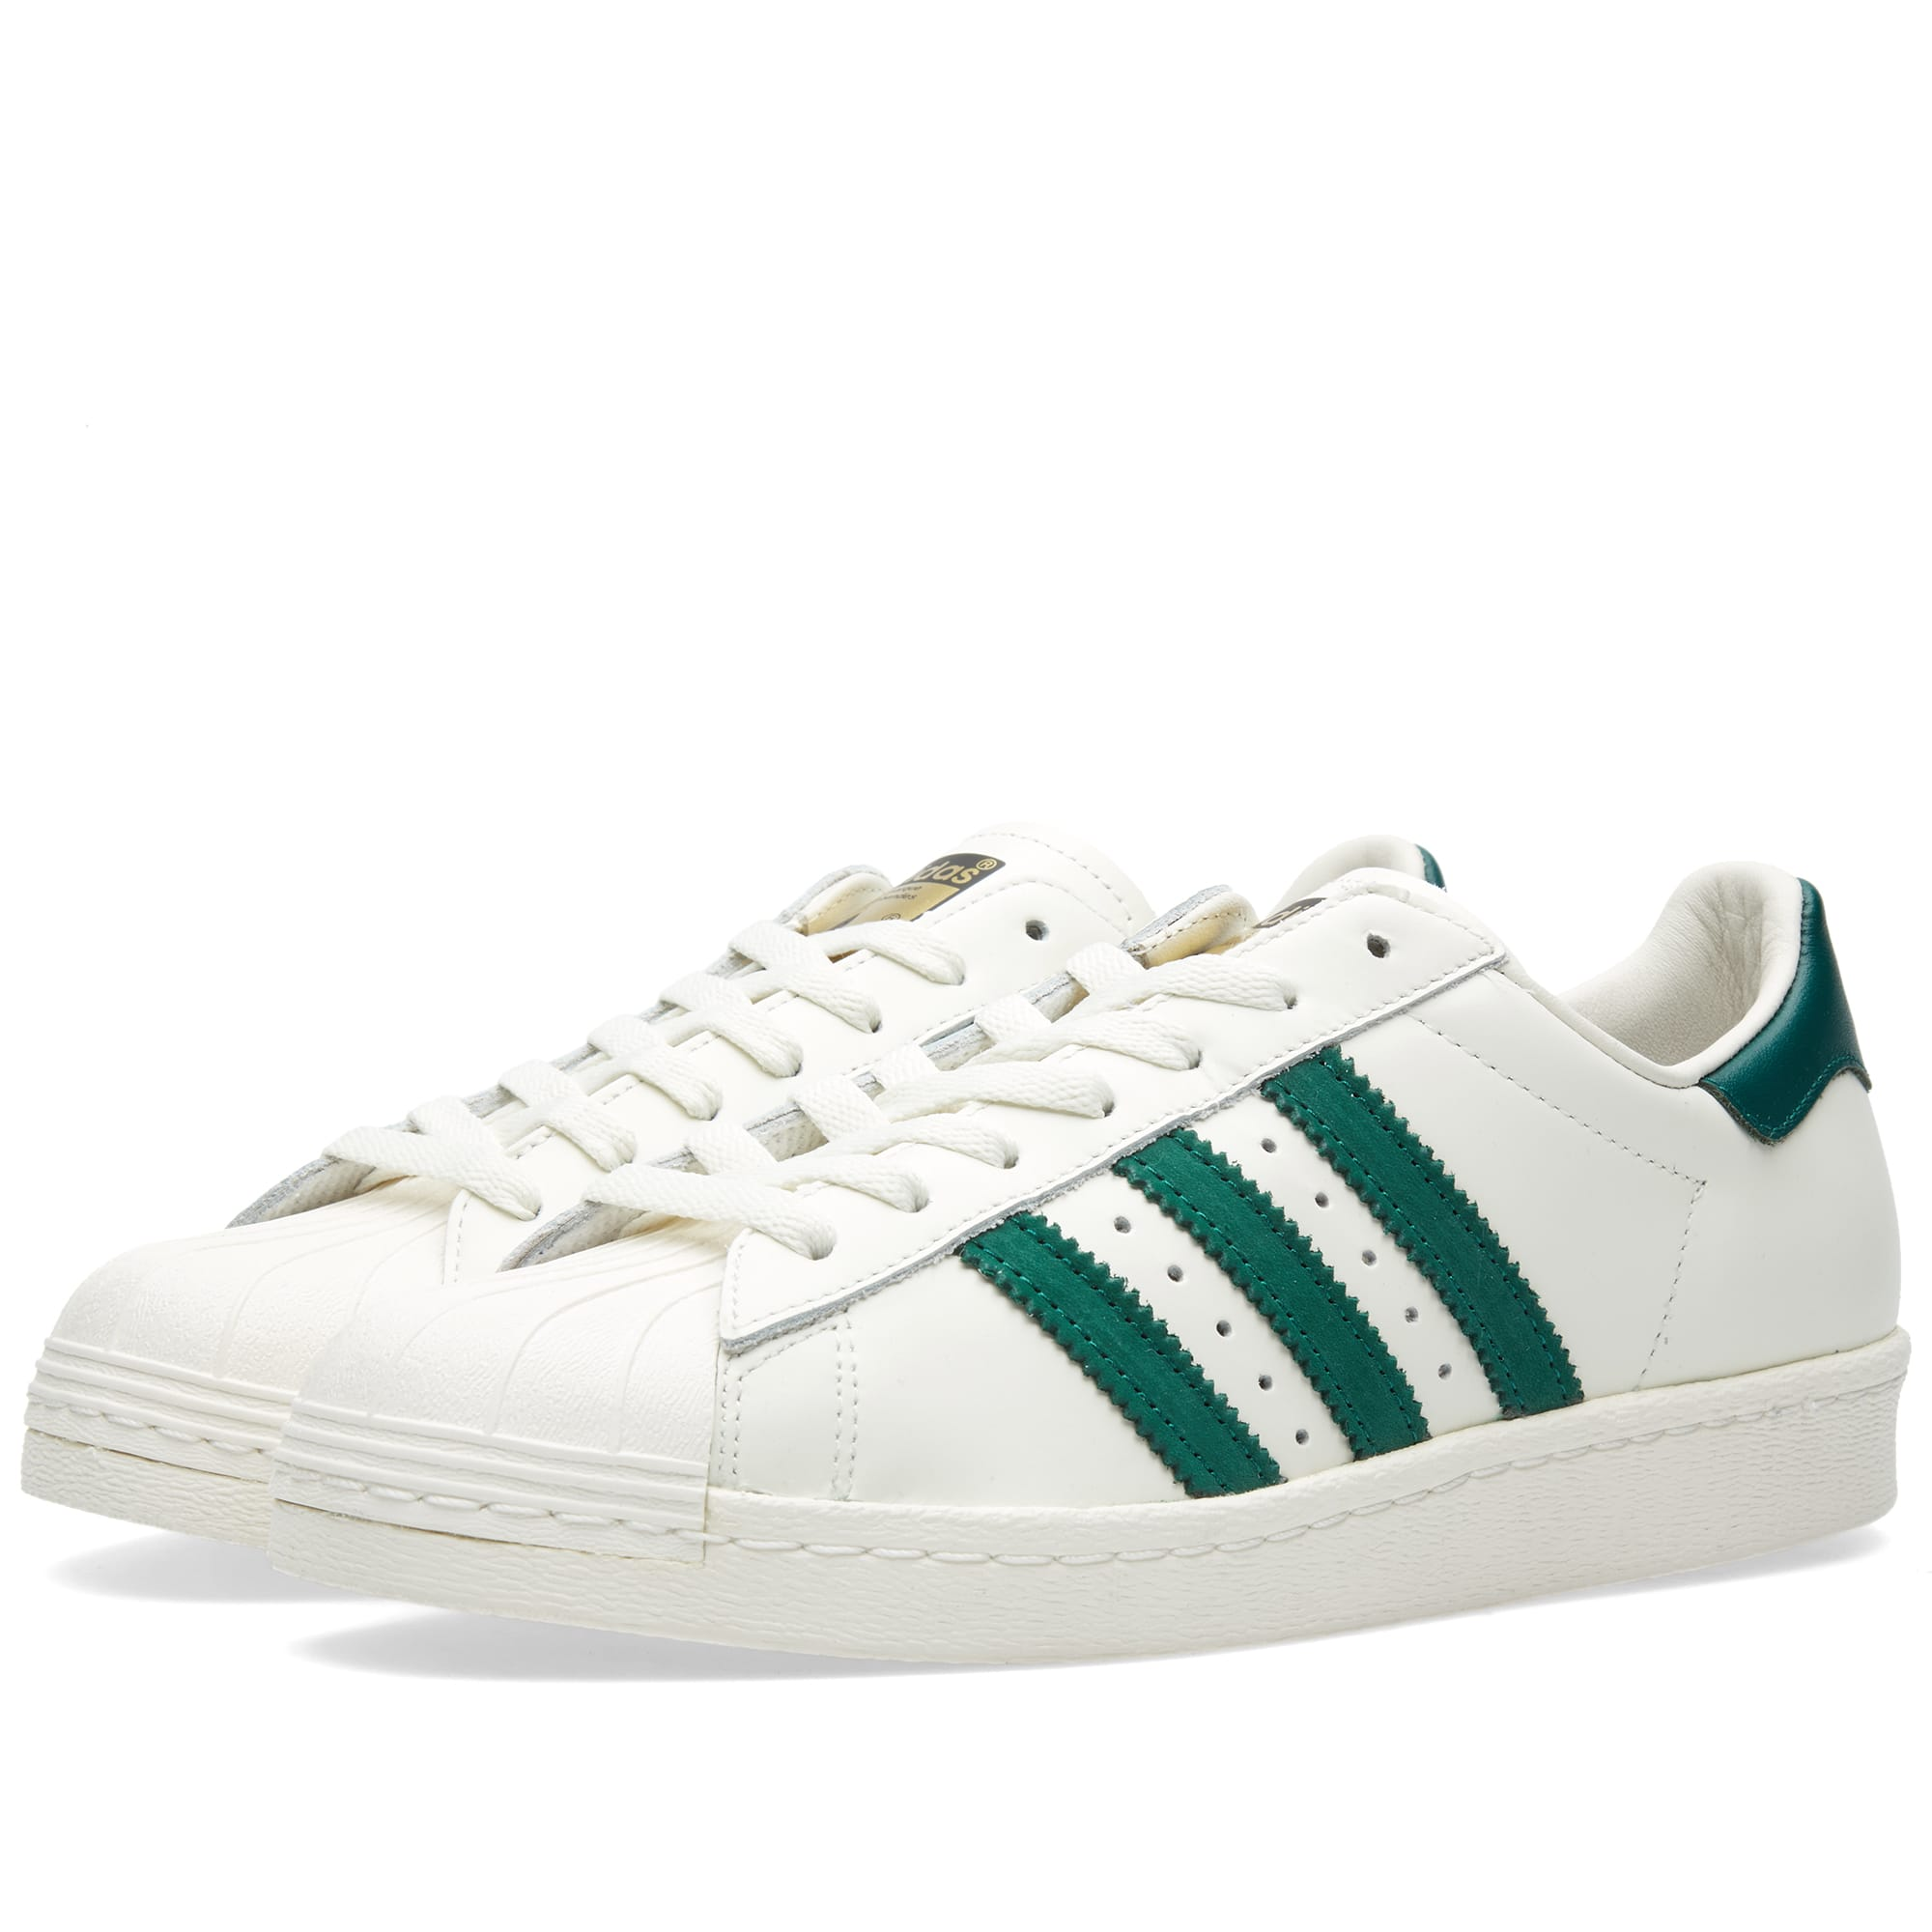 lowest price 1055f 29852 Adidas Superstar 80s DLX